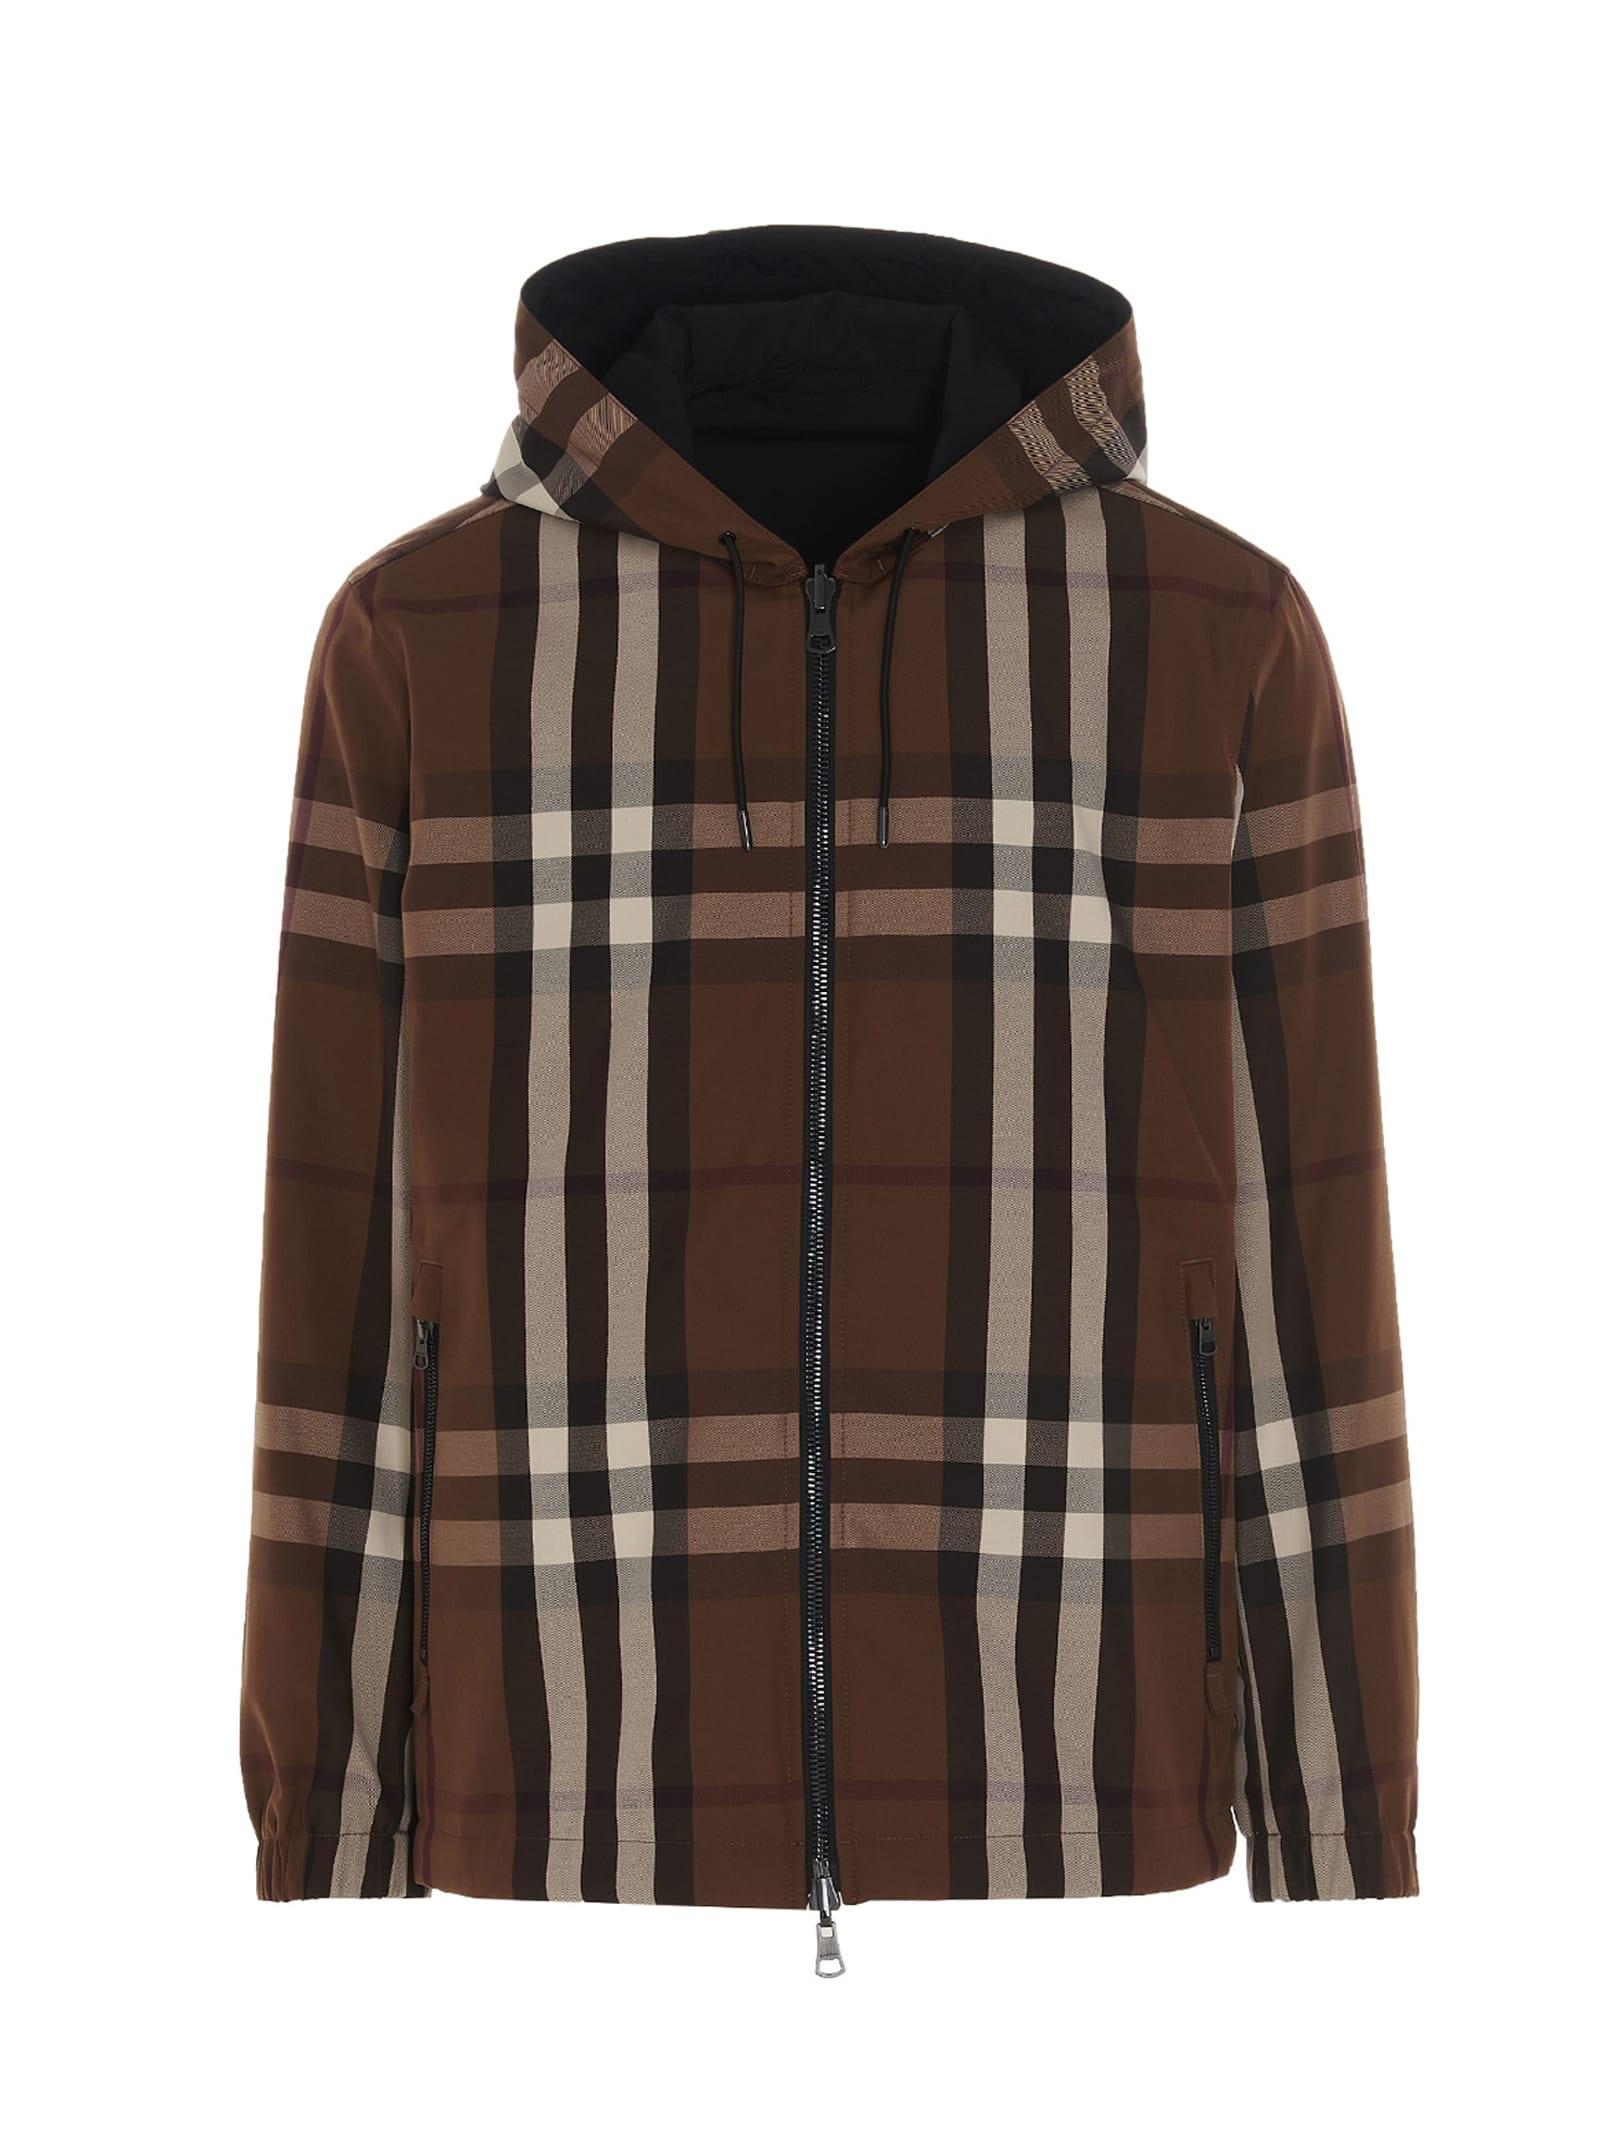 Burberry STRETTON JACKET